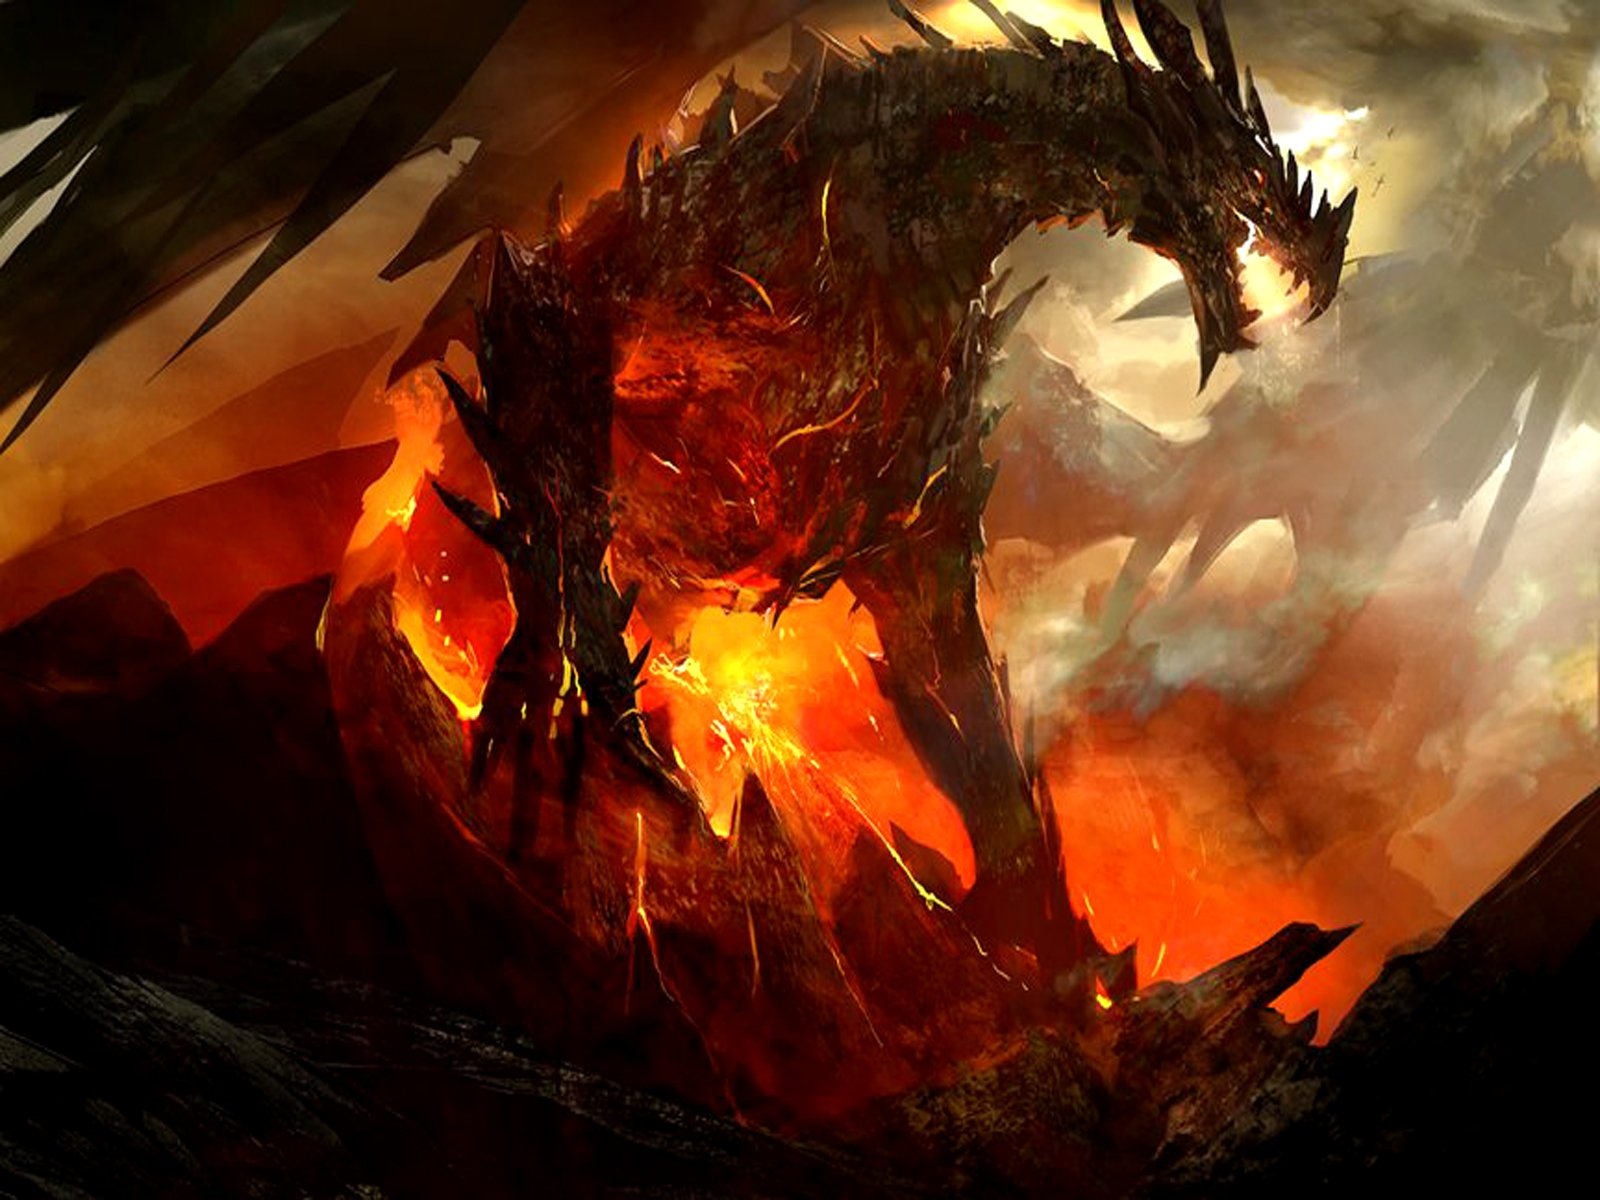 wallpaper dragons wallpaper cool dragon wallpapers dragon desktop 1600x1200